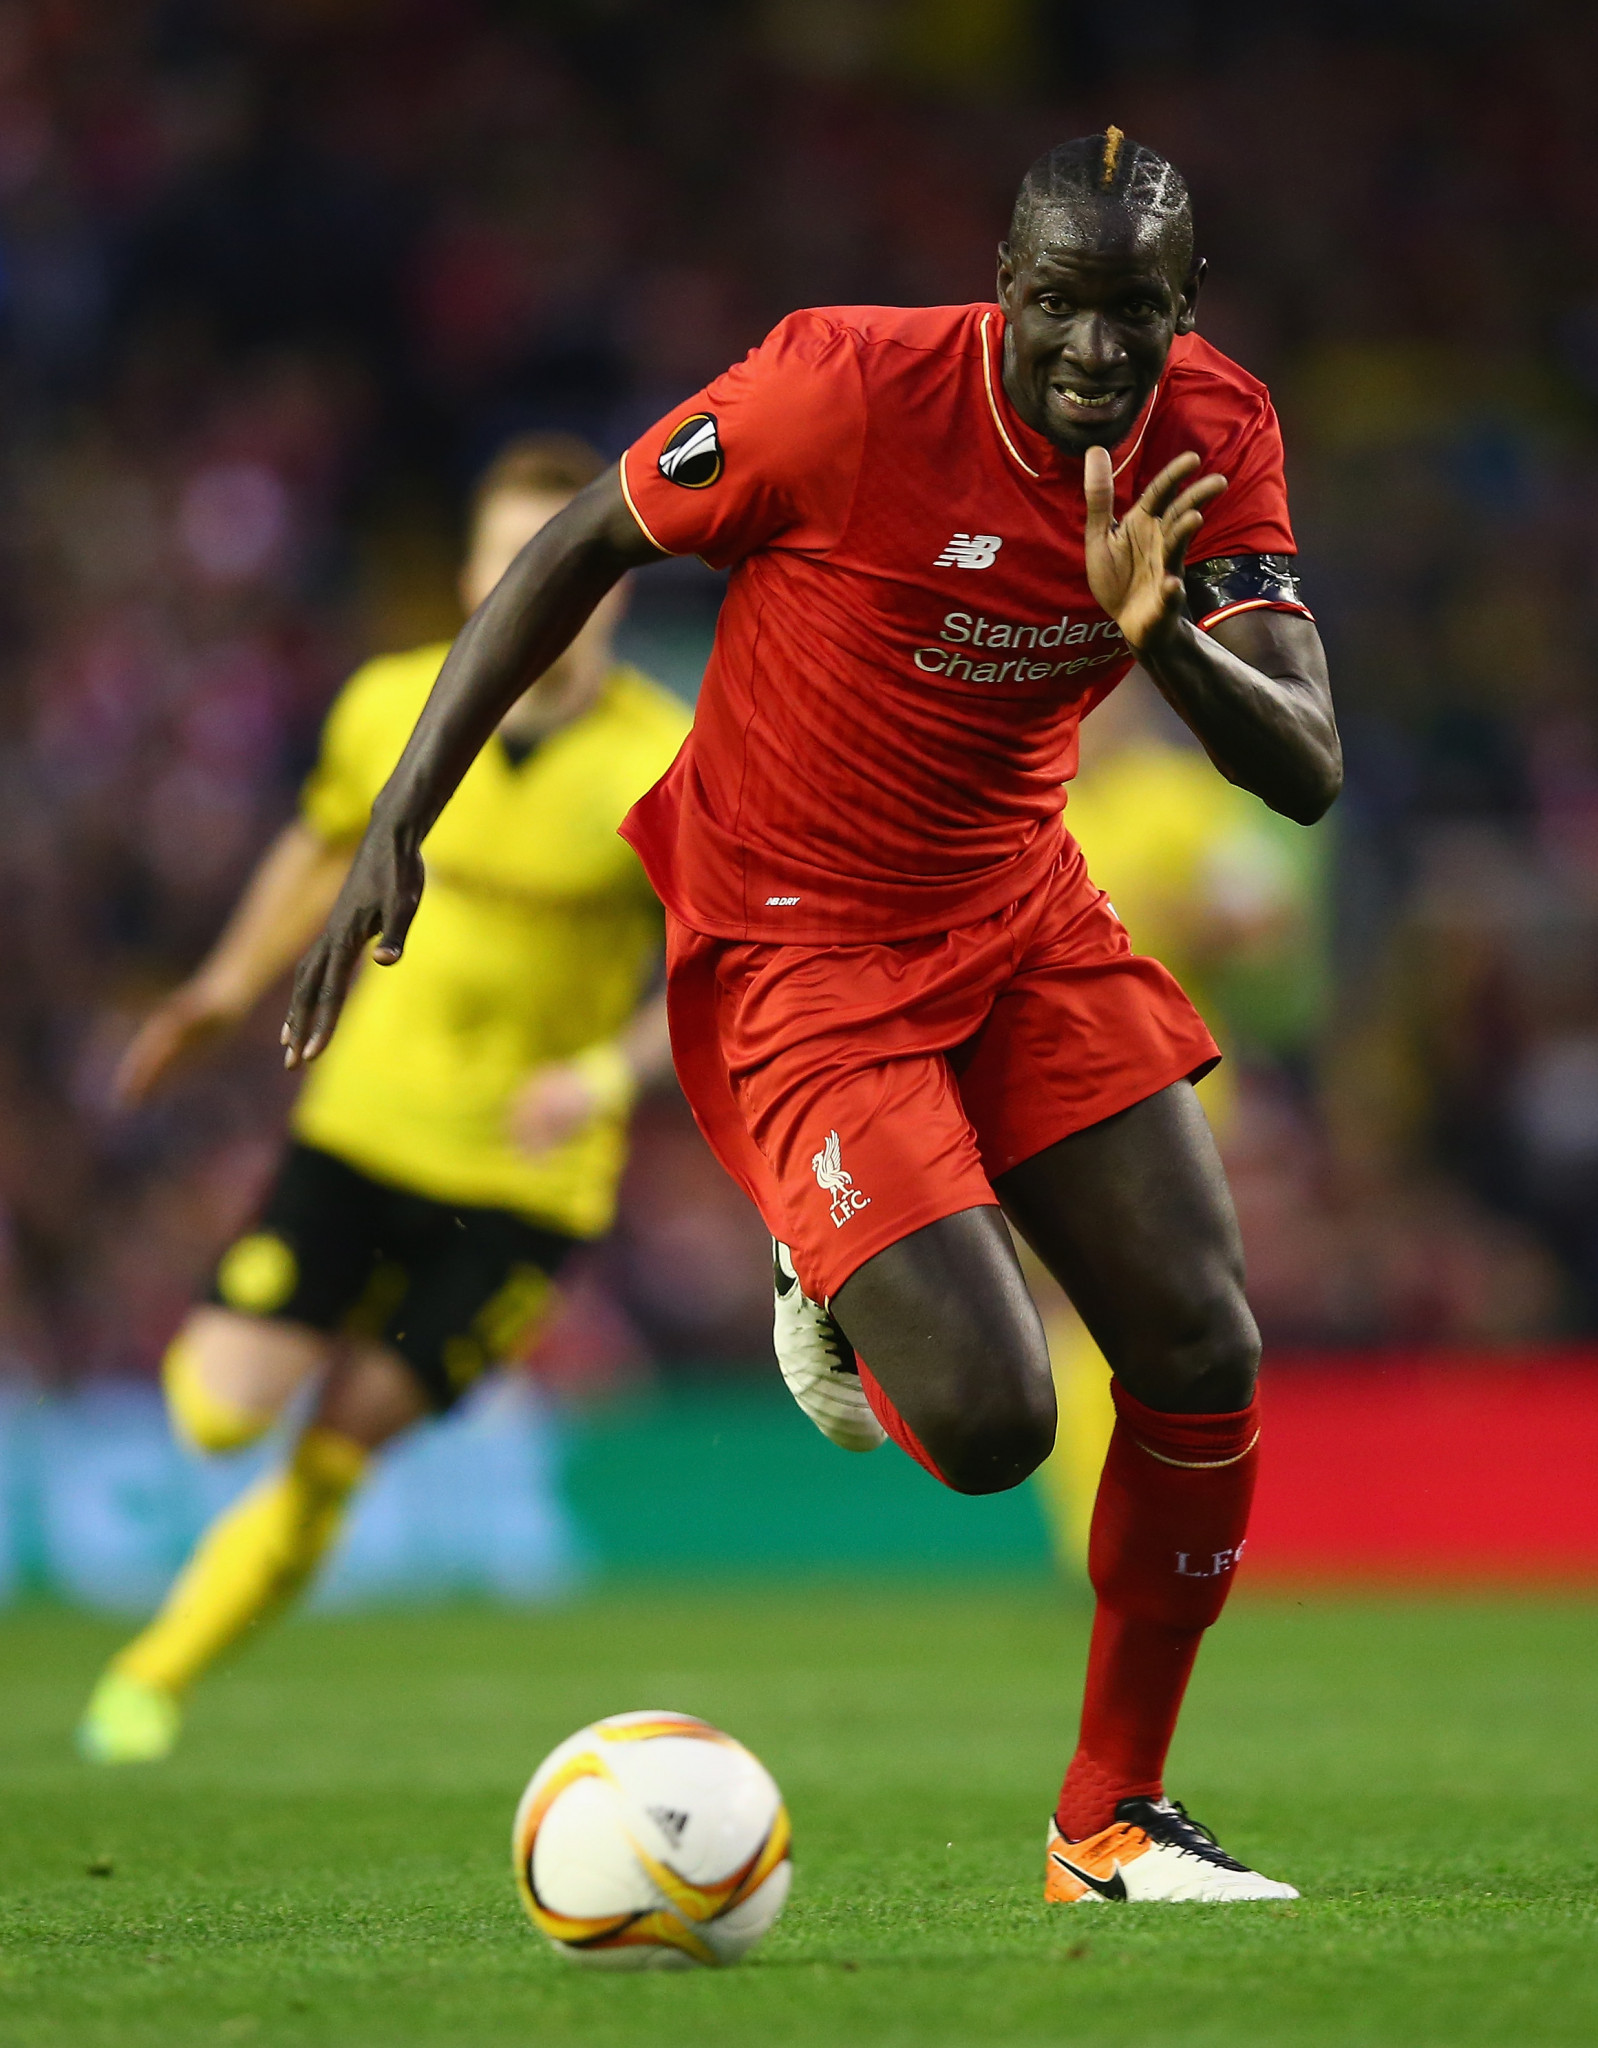 Premier League footballer Mamadou Sakho is suing the World Anti-Doping Agency in a case that could have big financial implications if his case is successful ©Getty Images